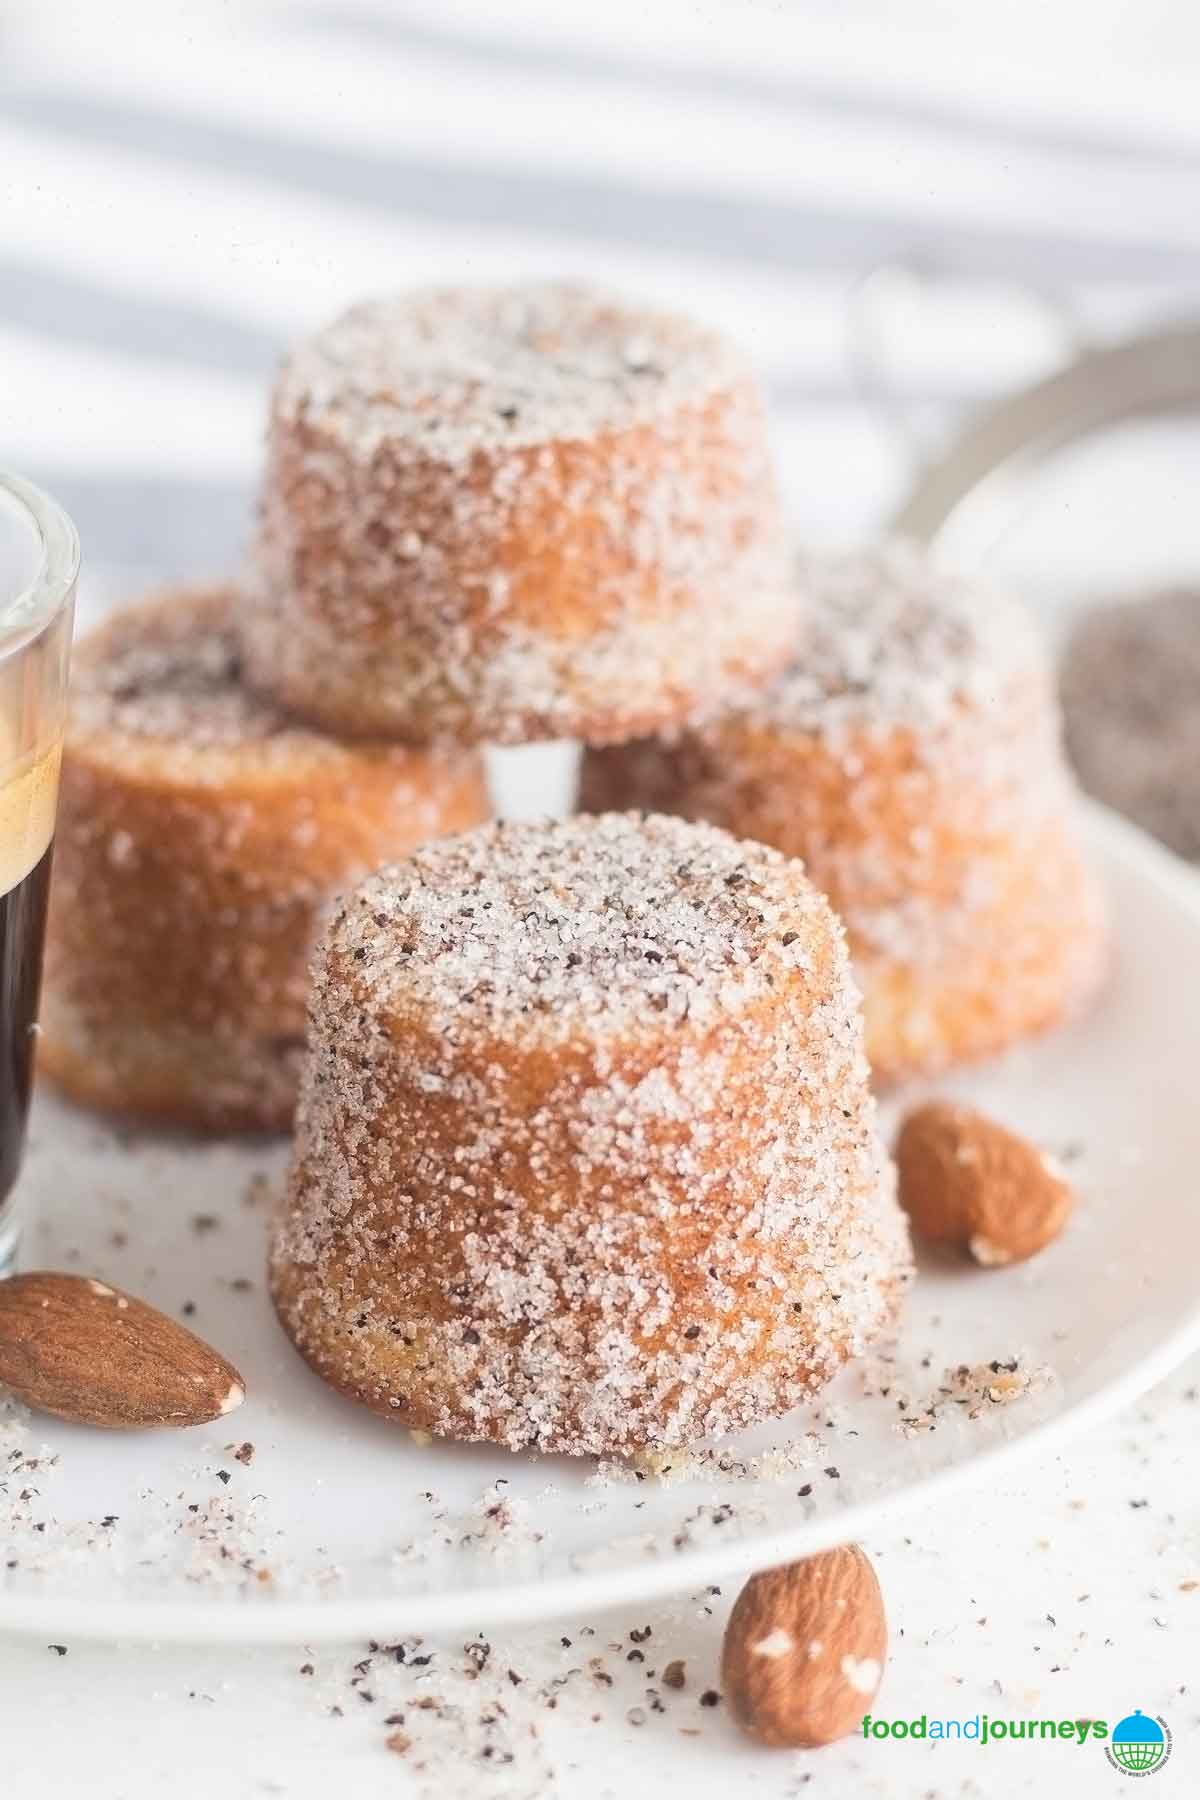 Swedish Almond and Cardamom mini Cakes, dusted with sugar and cardamom.